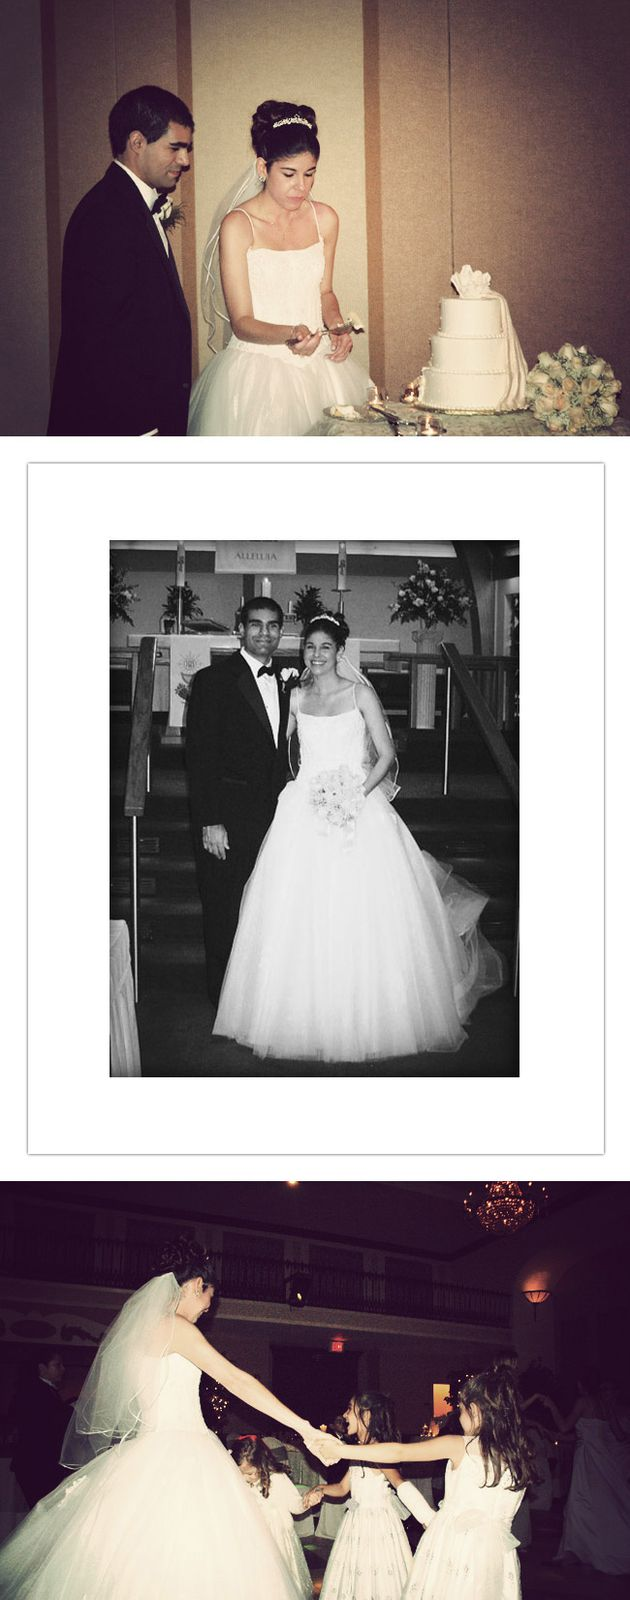 Wedding dress, Fashion, Oleg Cassini wedding dress, Manolo Blahnik heels, Tiara